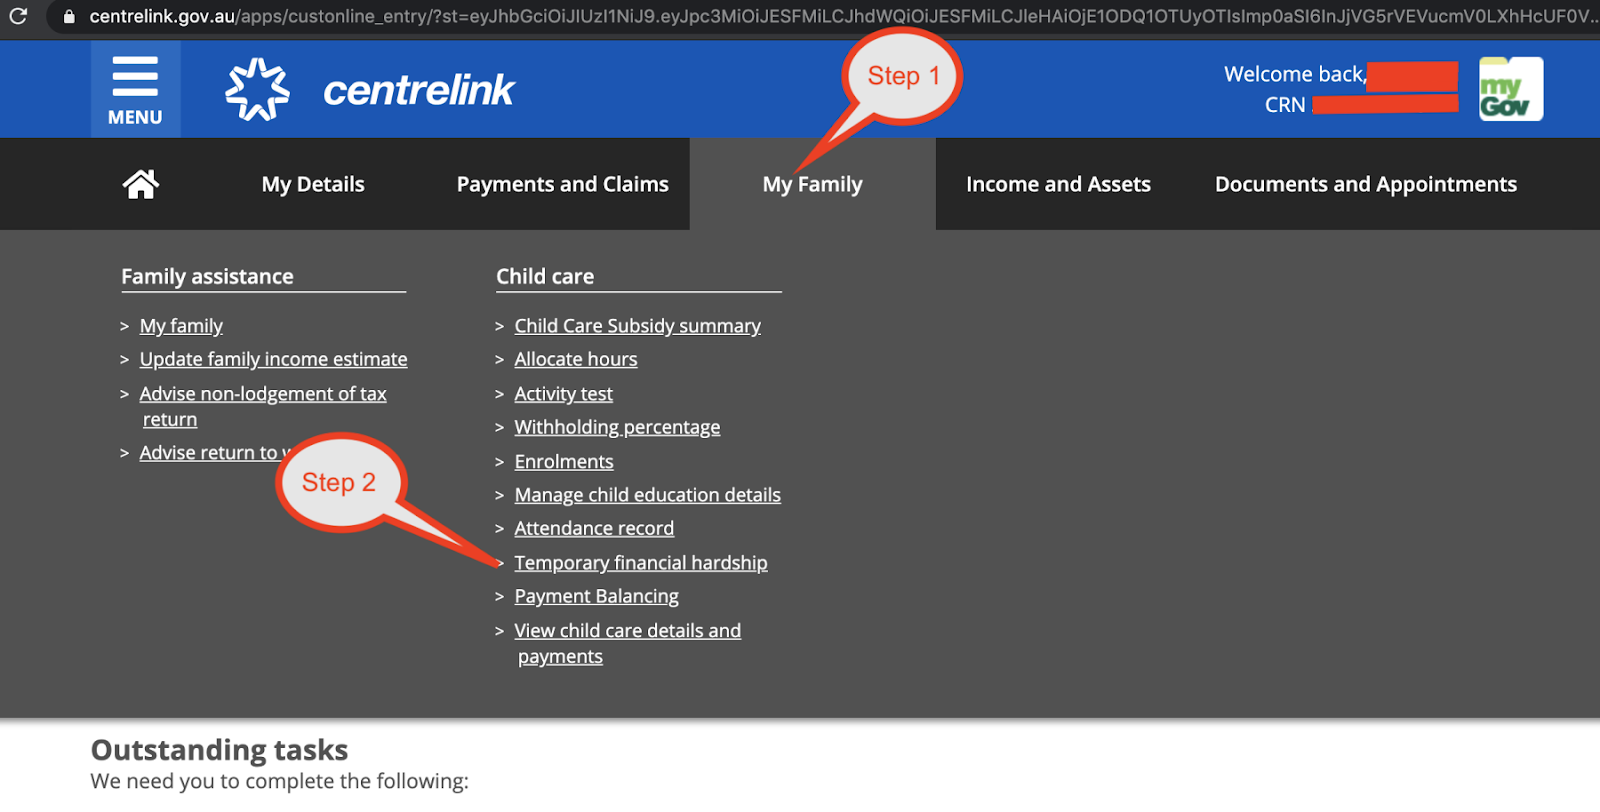 Screen shot from Centrelink online ACCS application